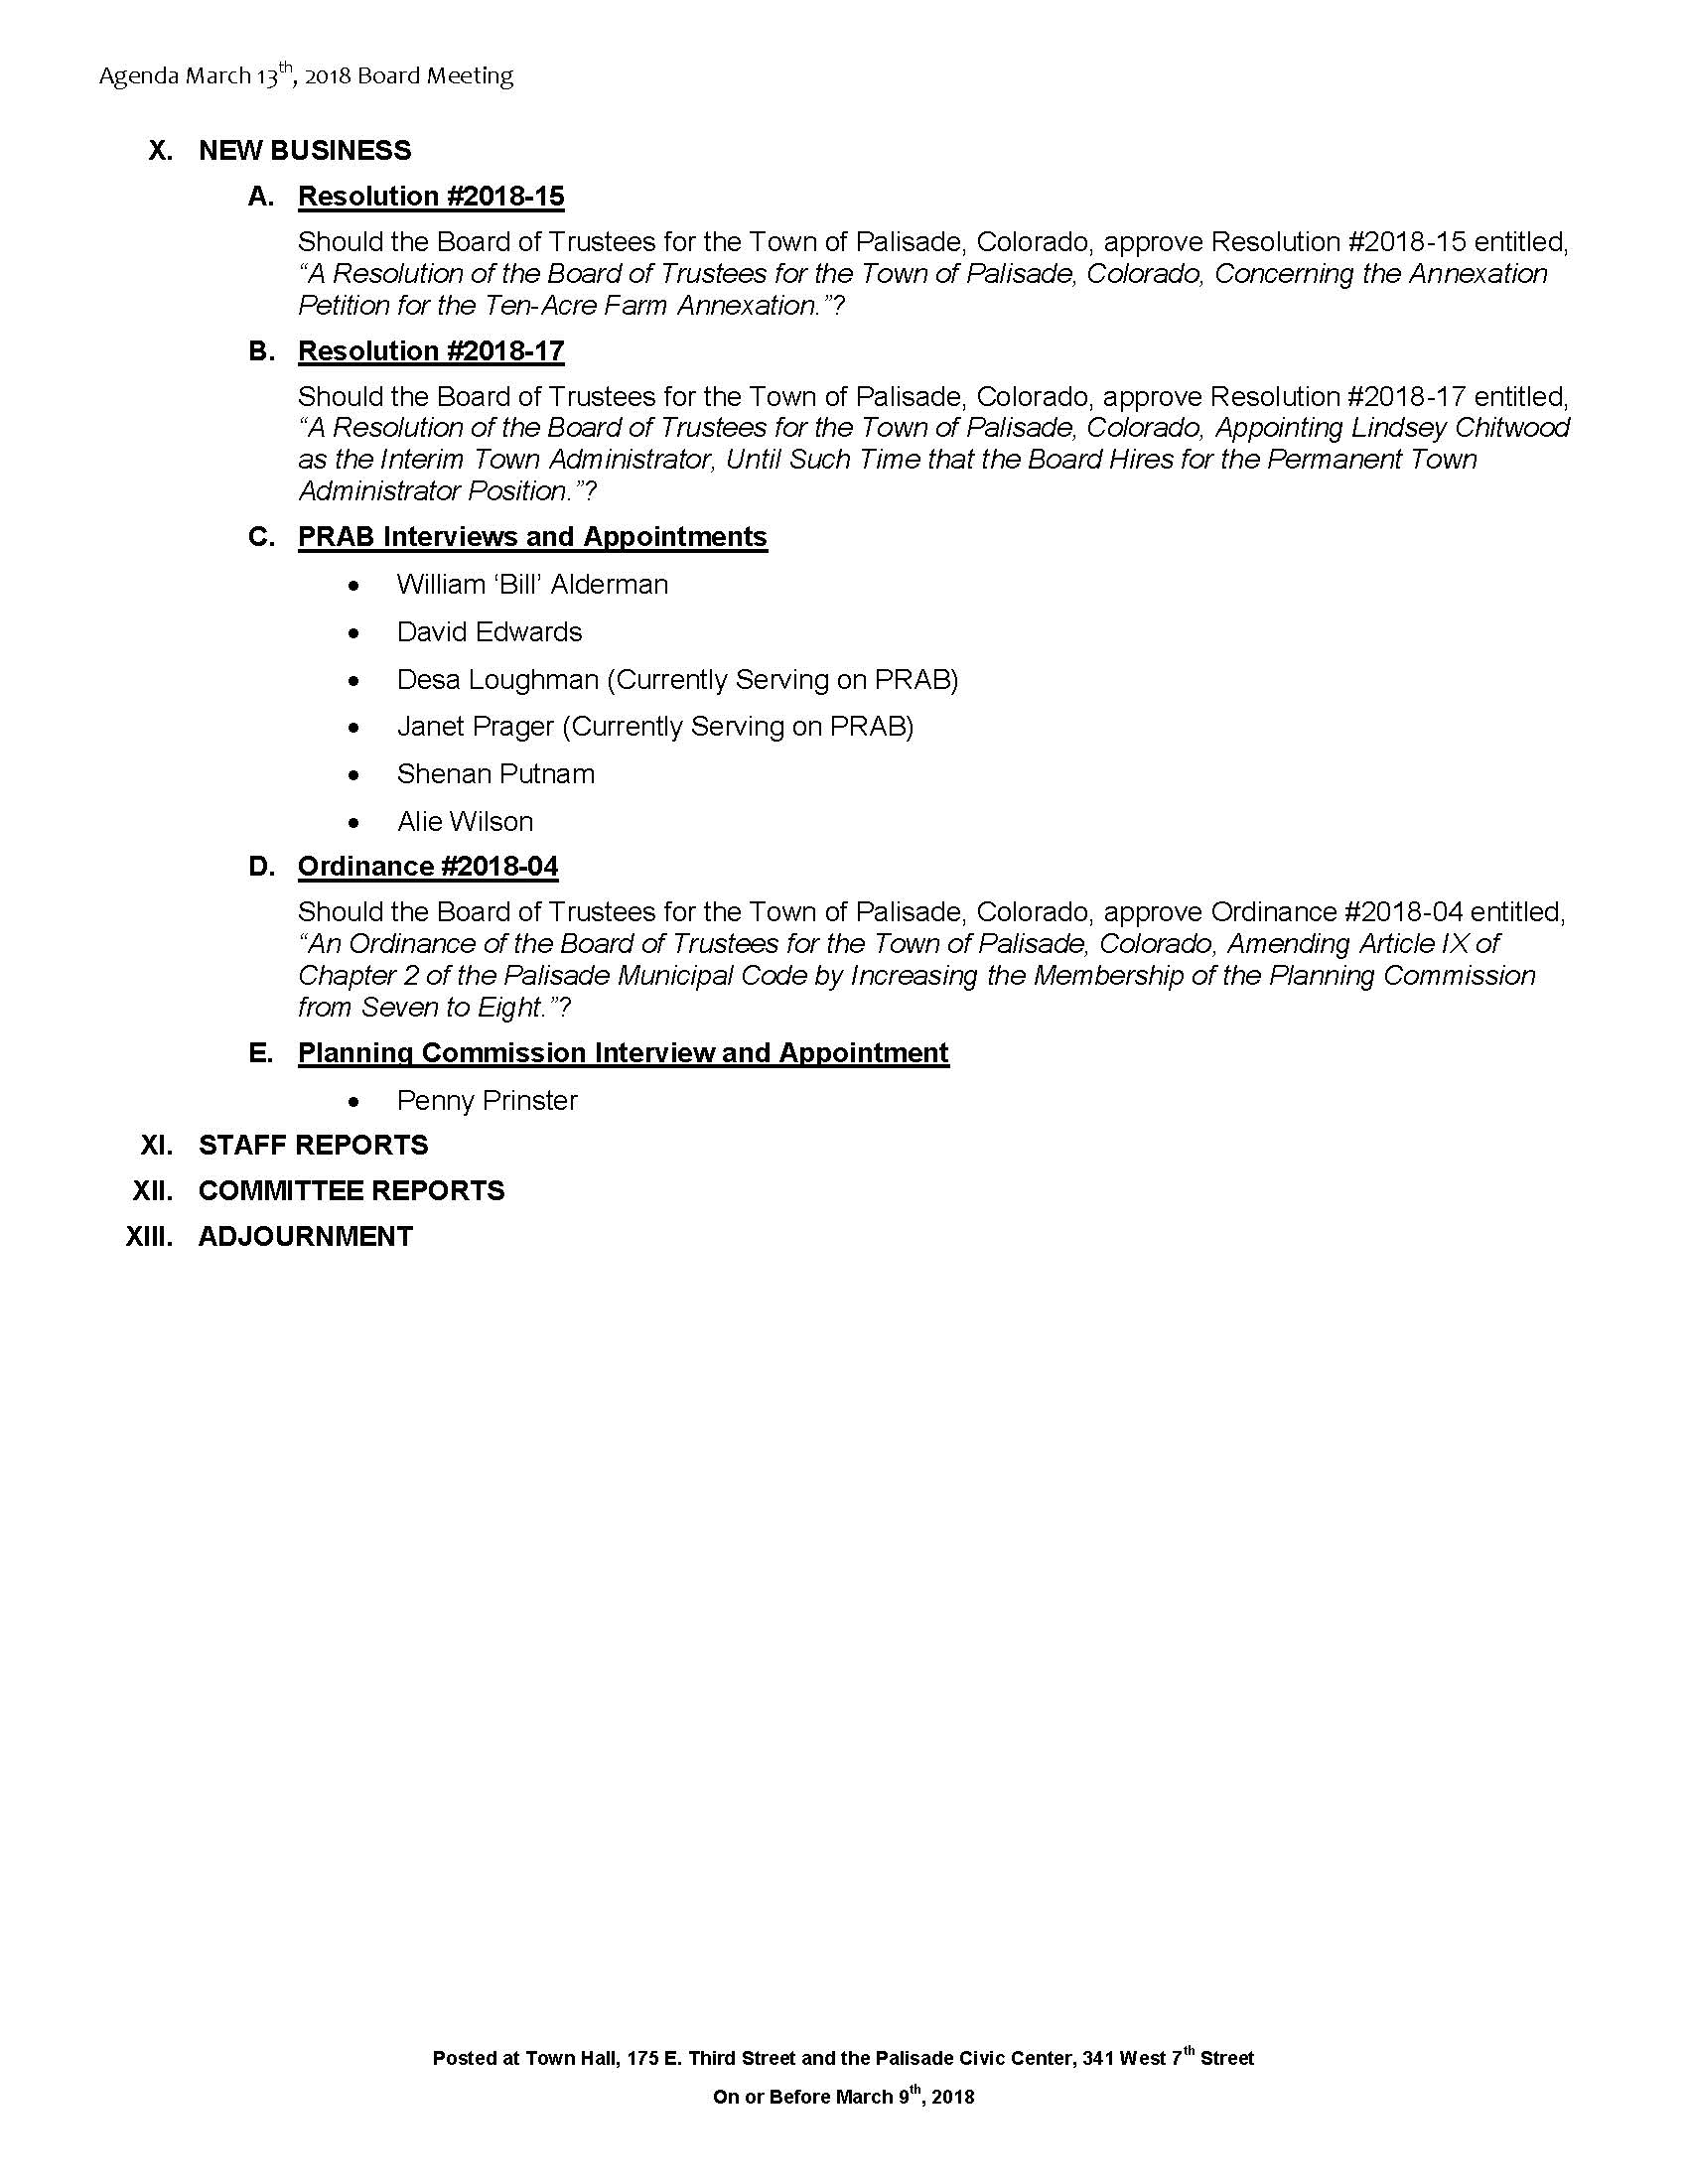 March 13th 2018 Board Meeting Agenda Page 2